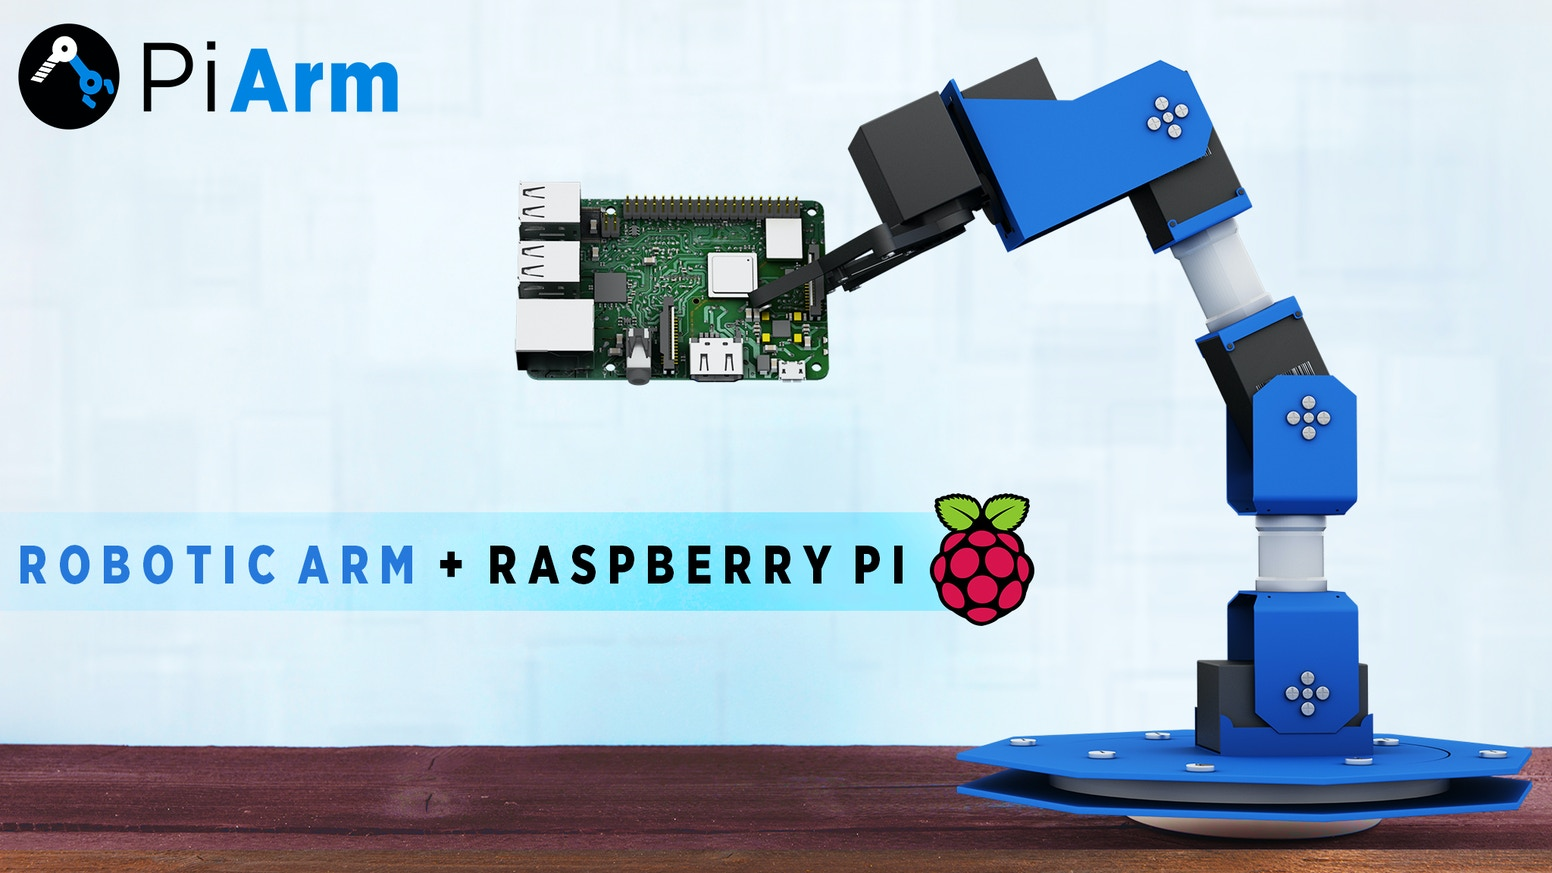 PiArm: The DIY Robotic Arm for Raspberry Pi by SB Components Ltd